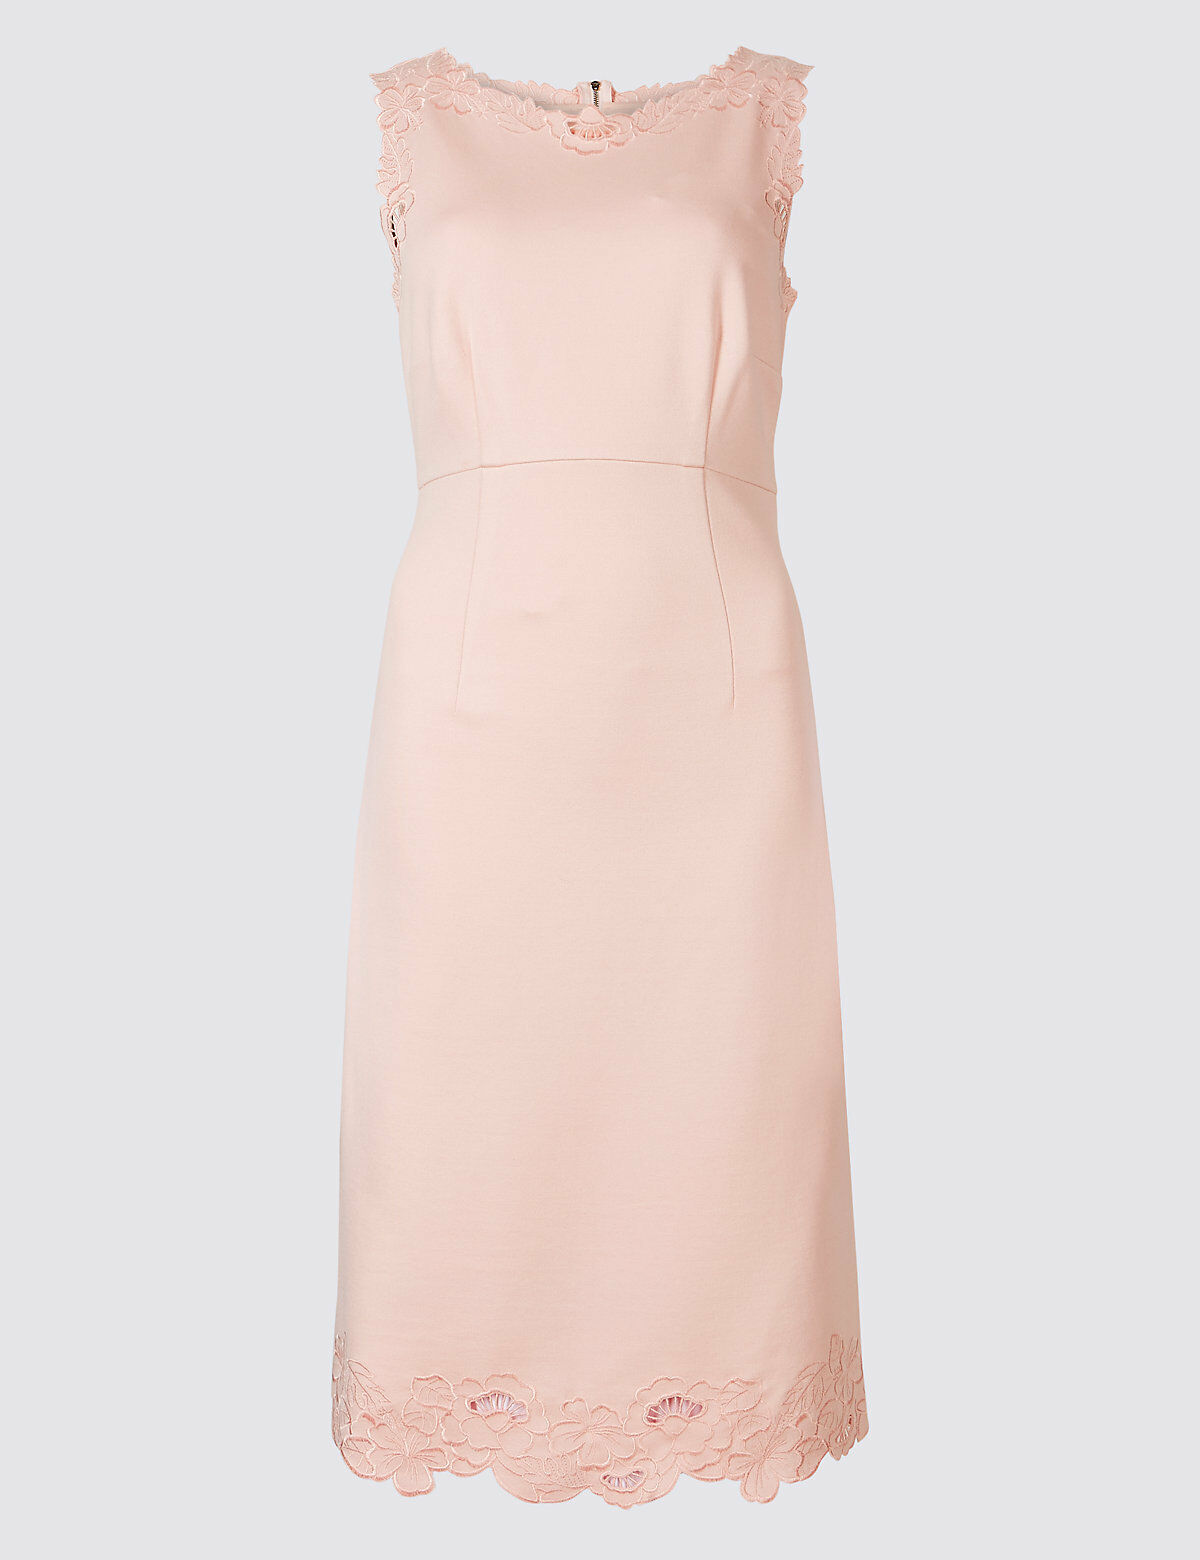 MARKS AND SPENCER EMBROIDERED JERSEY SHIFT DRESS SIZE 20 RRP